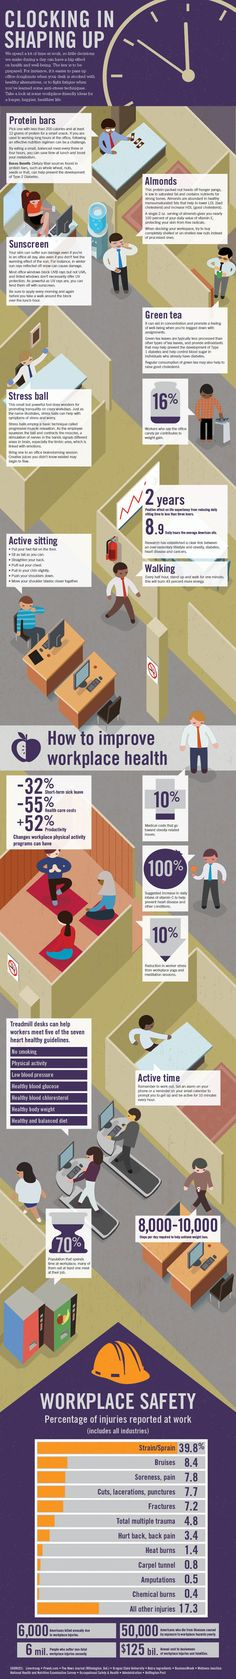 Our infographic walks through some of the key health and wellness opportunities and pitfalls of the office. Take a look at some of the workplace-frien